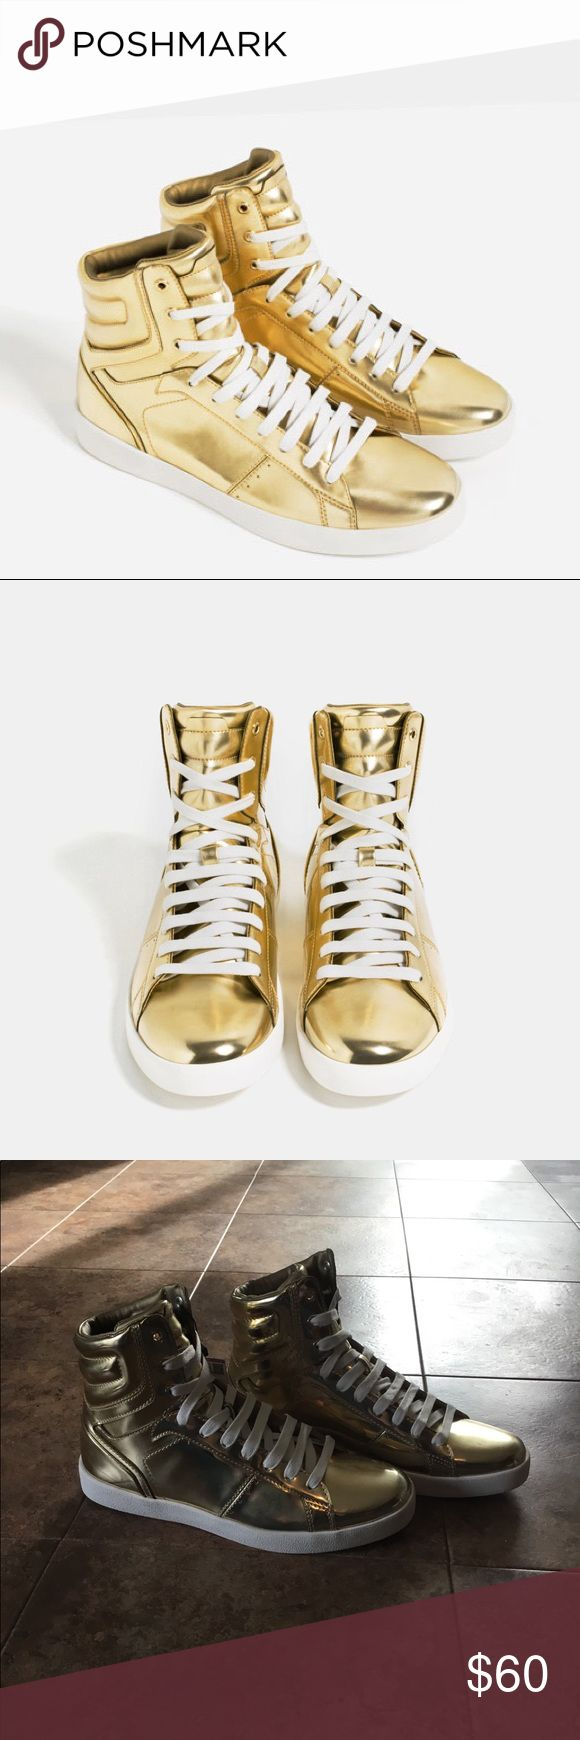 NWT ZARA MAN Gold High Top Sneakers NWT Zara Man Gold High Top Sneakers. Flashy and fun! Euro size 41 US size 8. Zara Shoes Sneakers